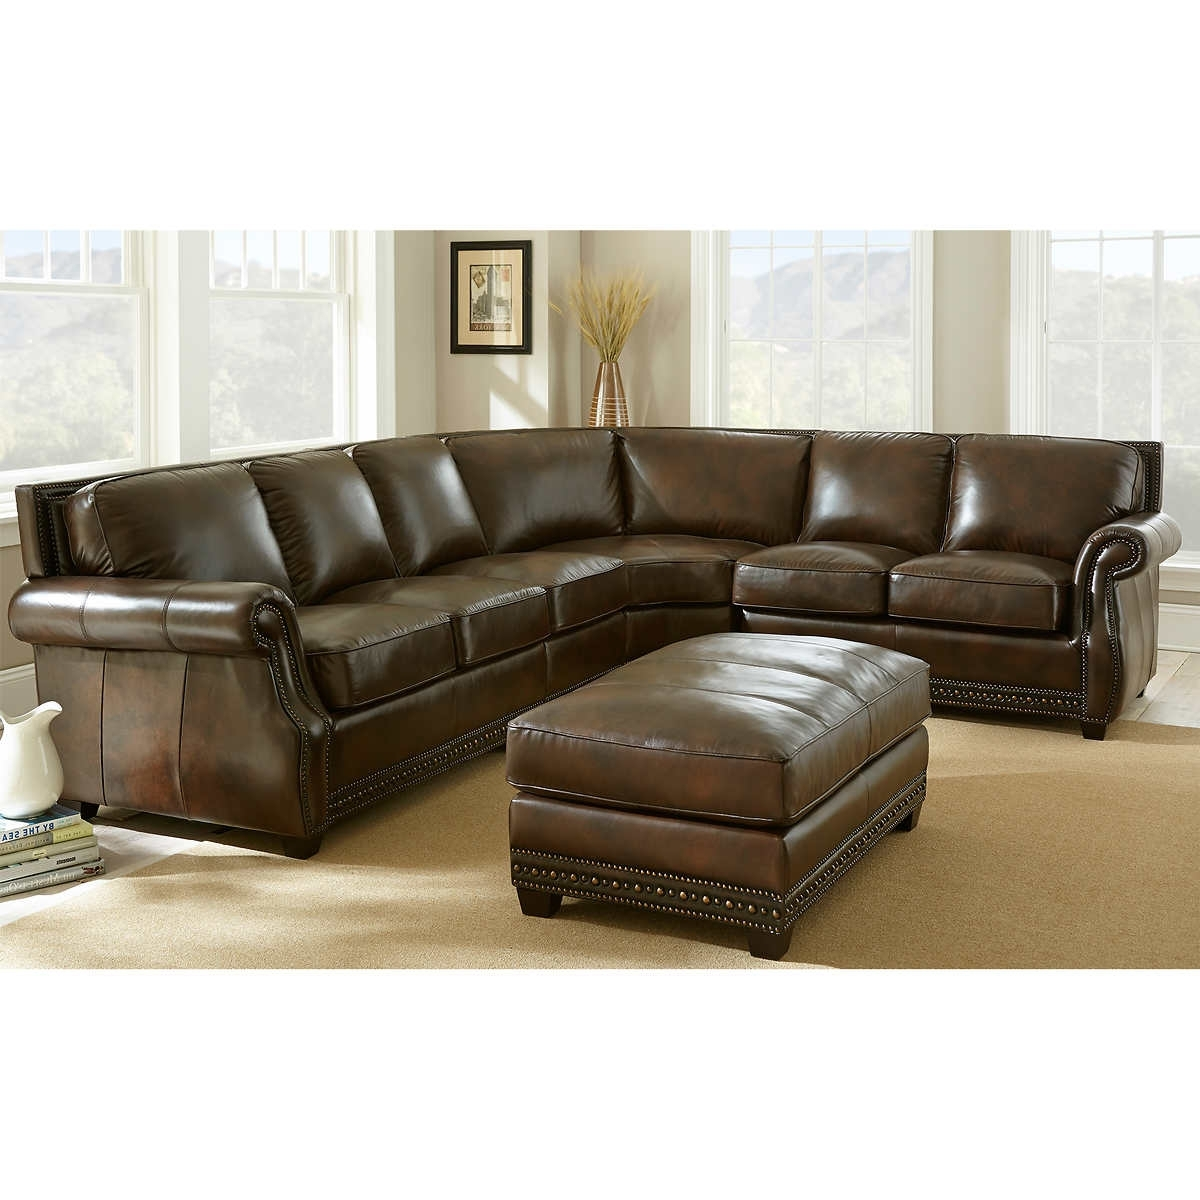 Preferred Sectional Sofas With Recliners Leather Inside Fancy Leather Sectional Sofa With Recliner 30 On Sofas And Couches (View 7 of 20)